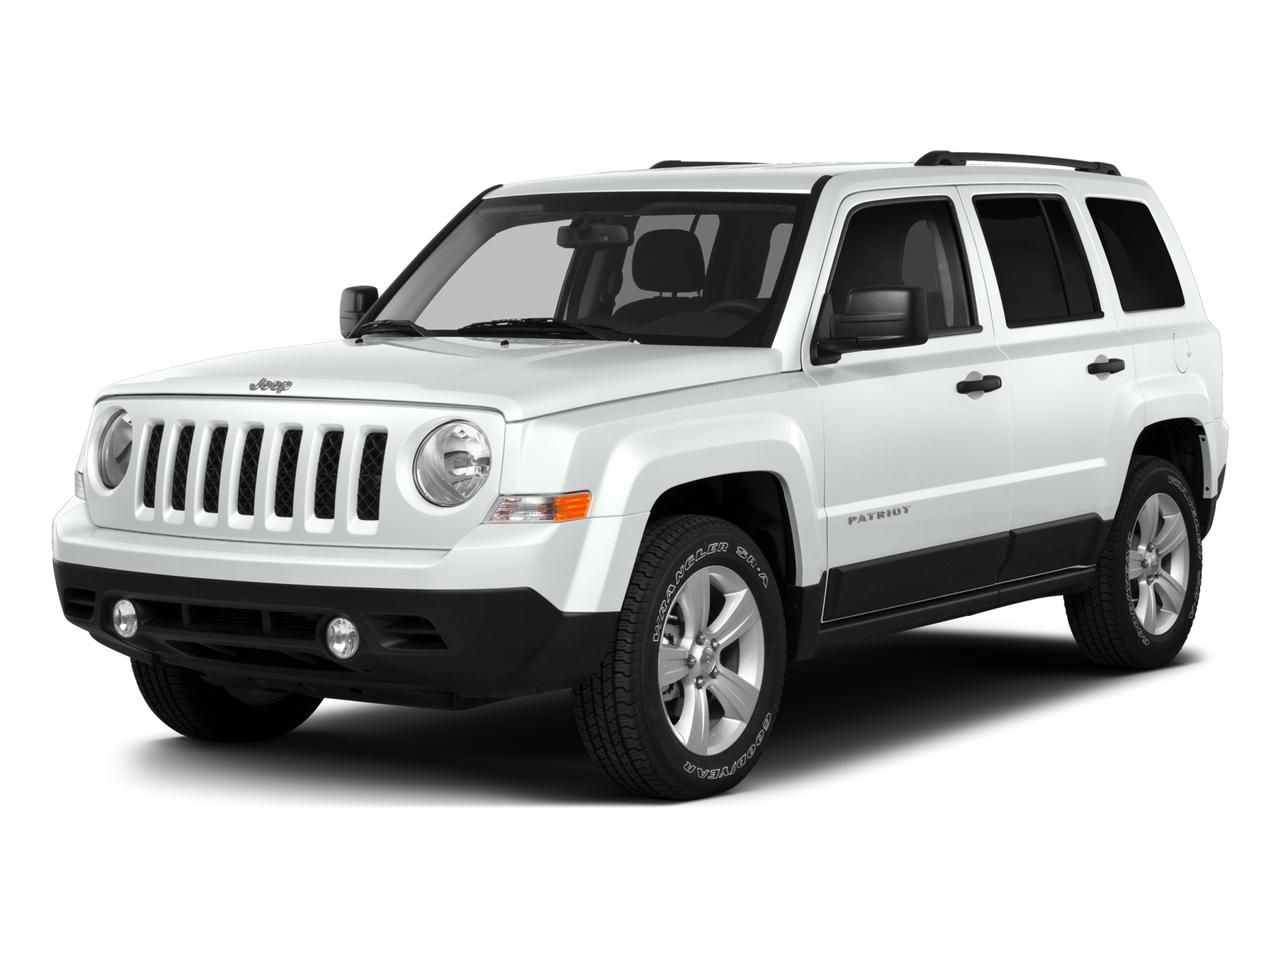 2016 Jeep Patriot Vehicle Photo in Nashua, NH 03060